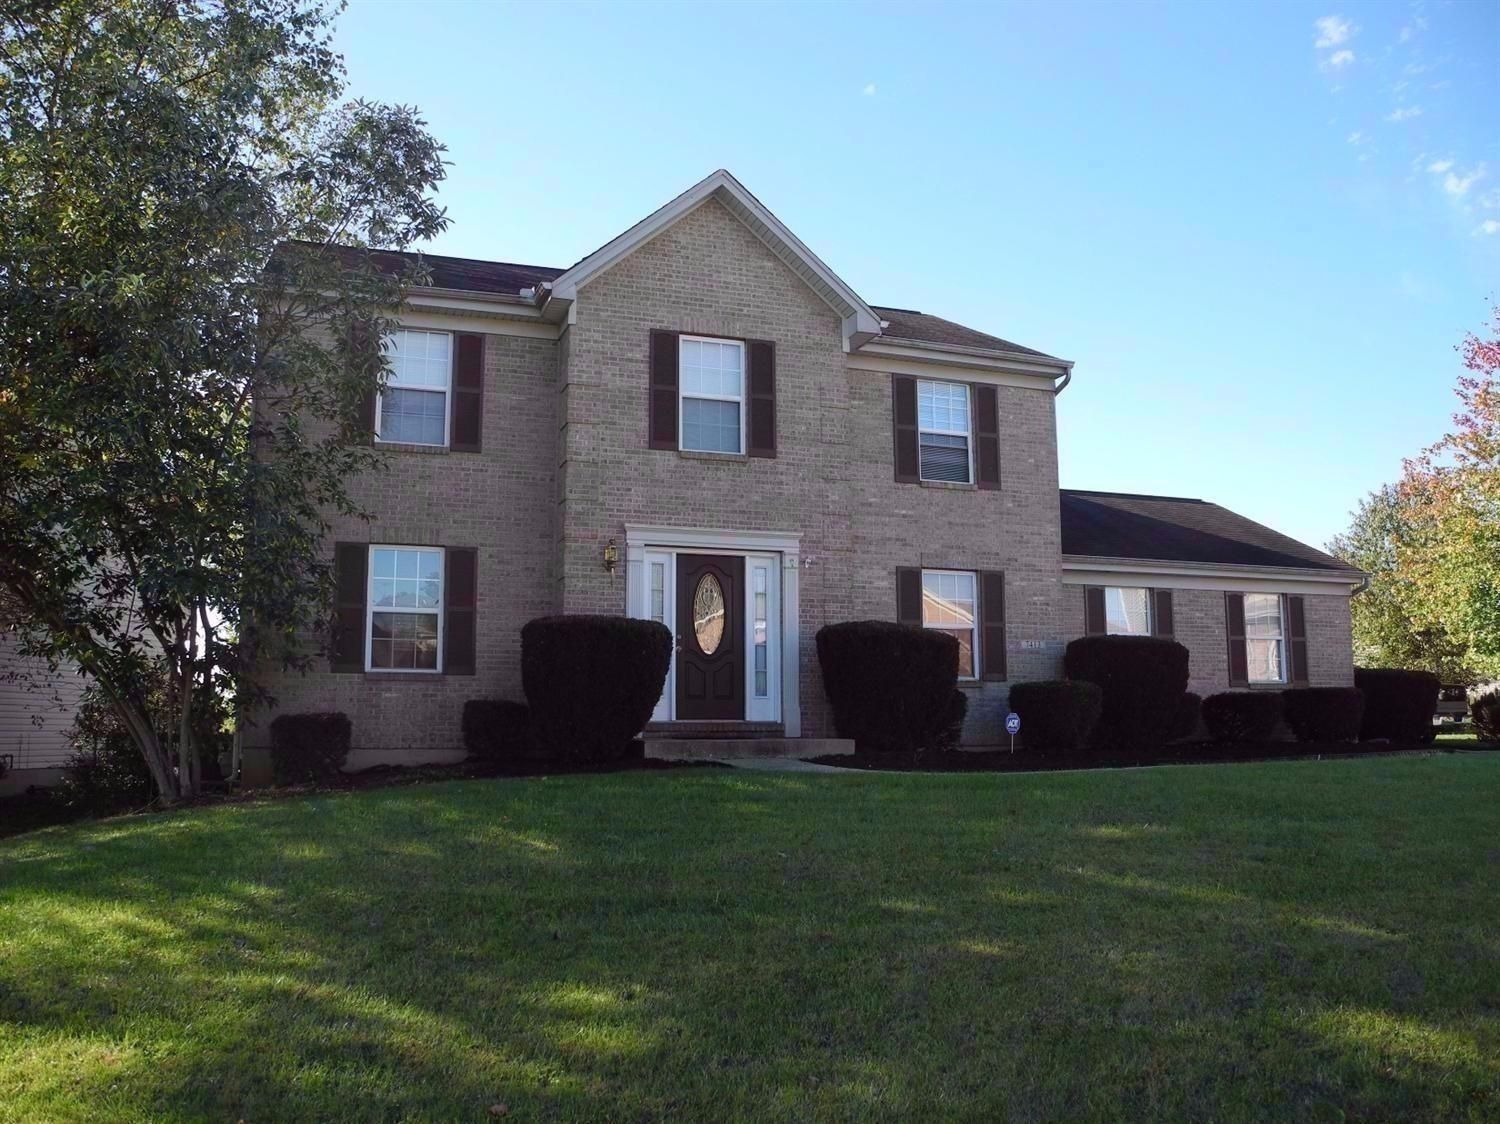 Photo 1 for 7413 Big Horn Ct Burlington, KY 41005